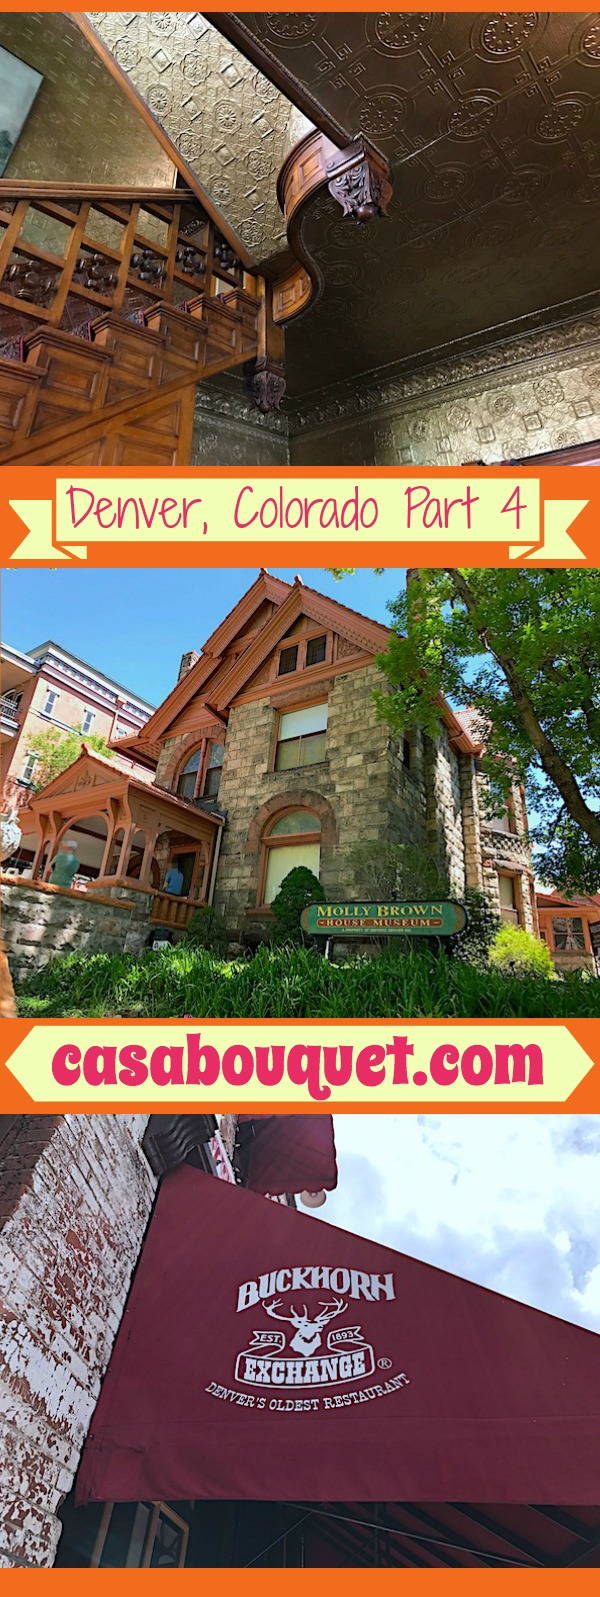 Denver Colorado has historic things to do in Capitol Hill and Lincoln Park near downtown. Visit the Brown House Museum and the Buckhorn Exchange.